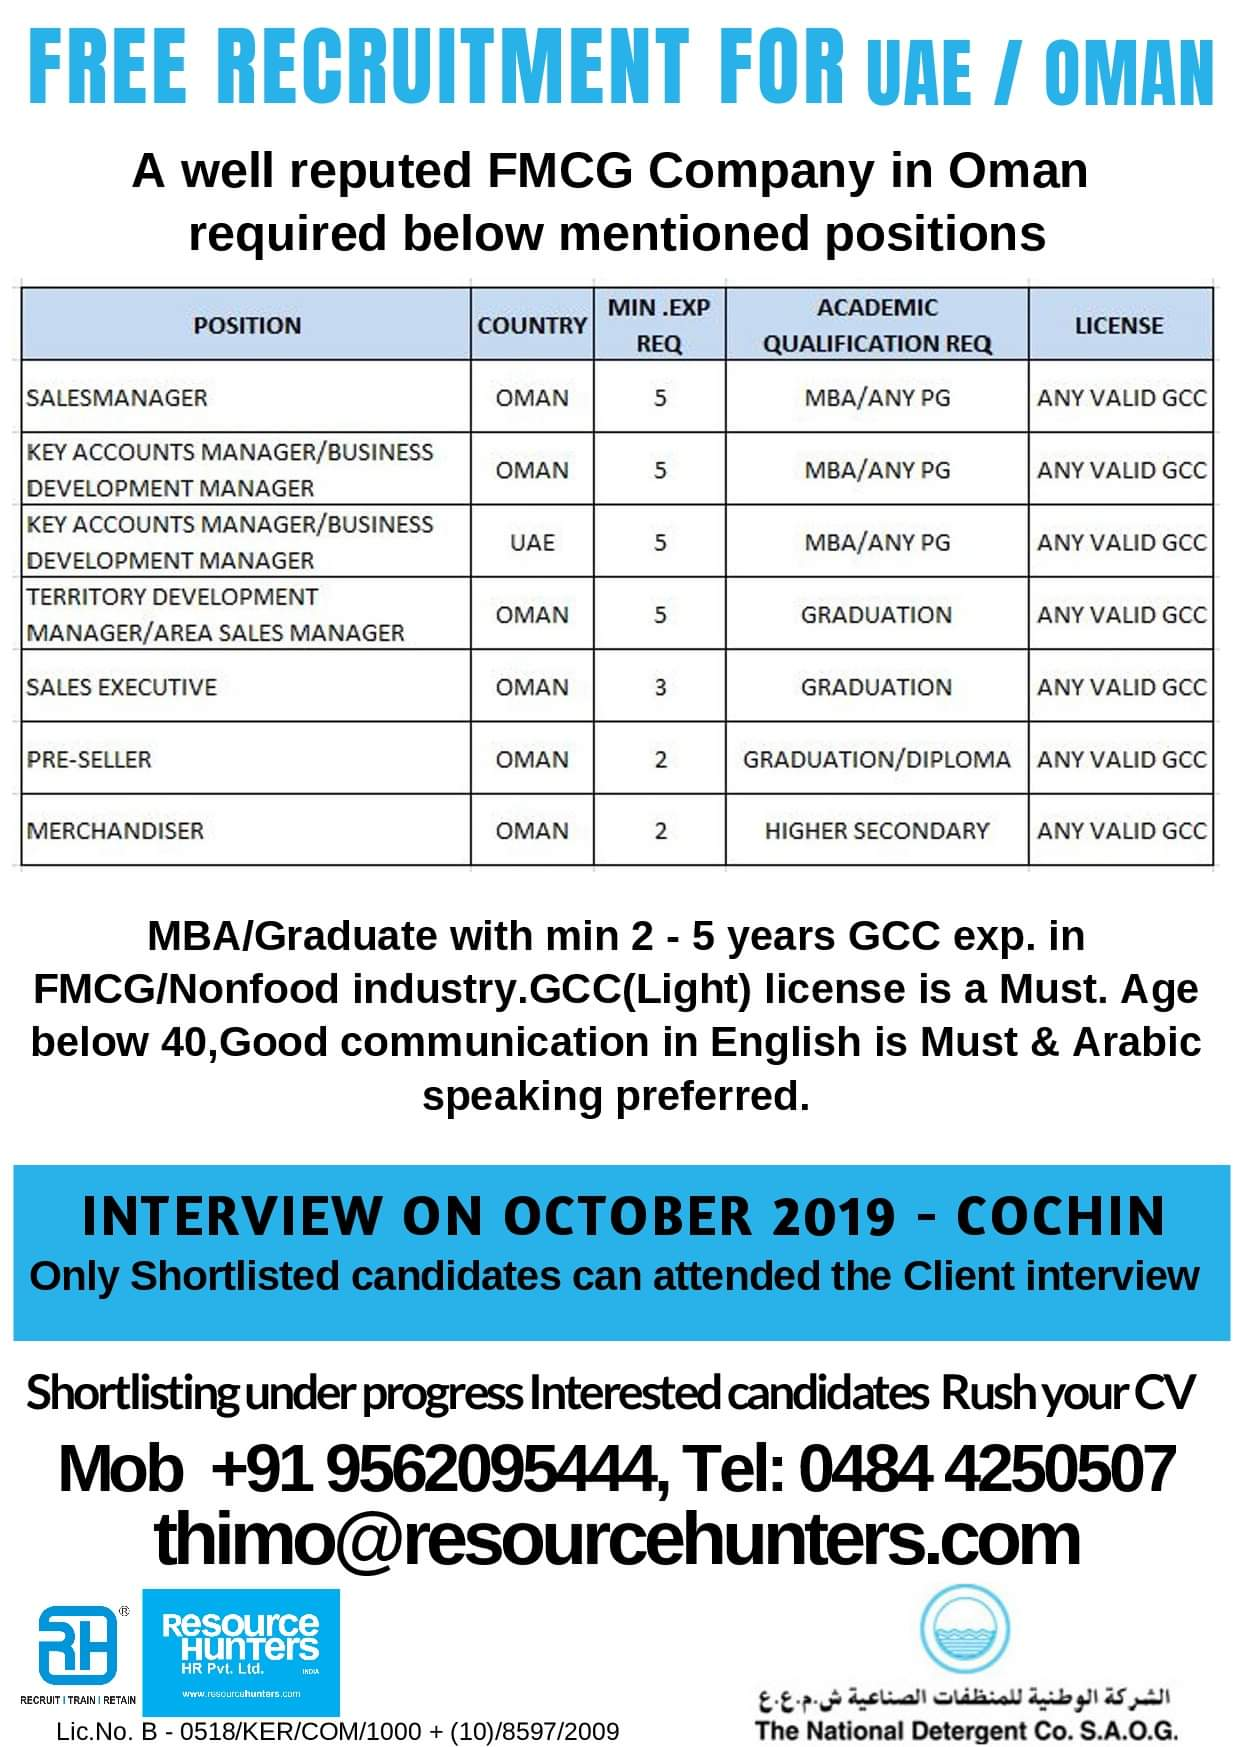 FREE REQUIREMENT FOR UAE/OMAN